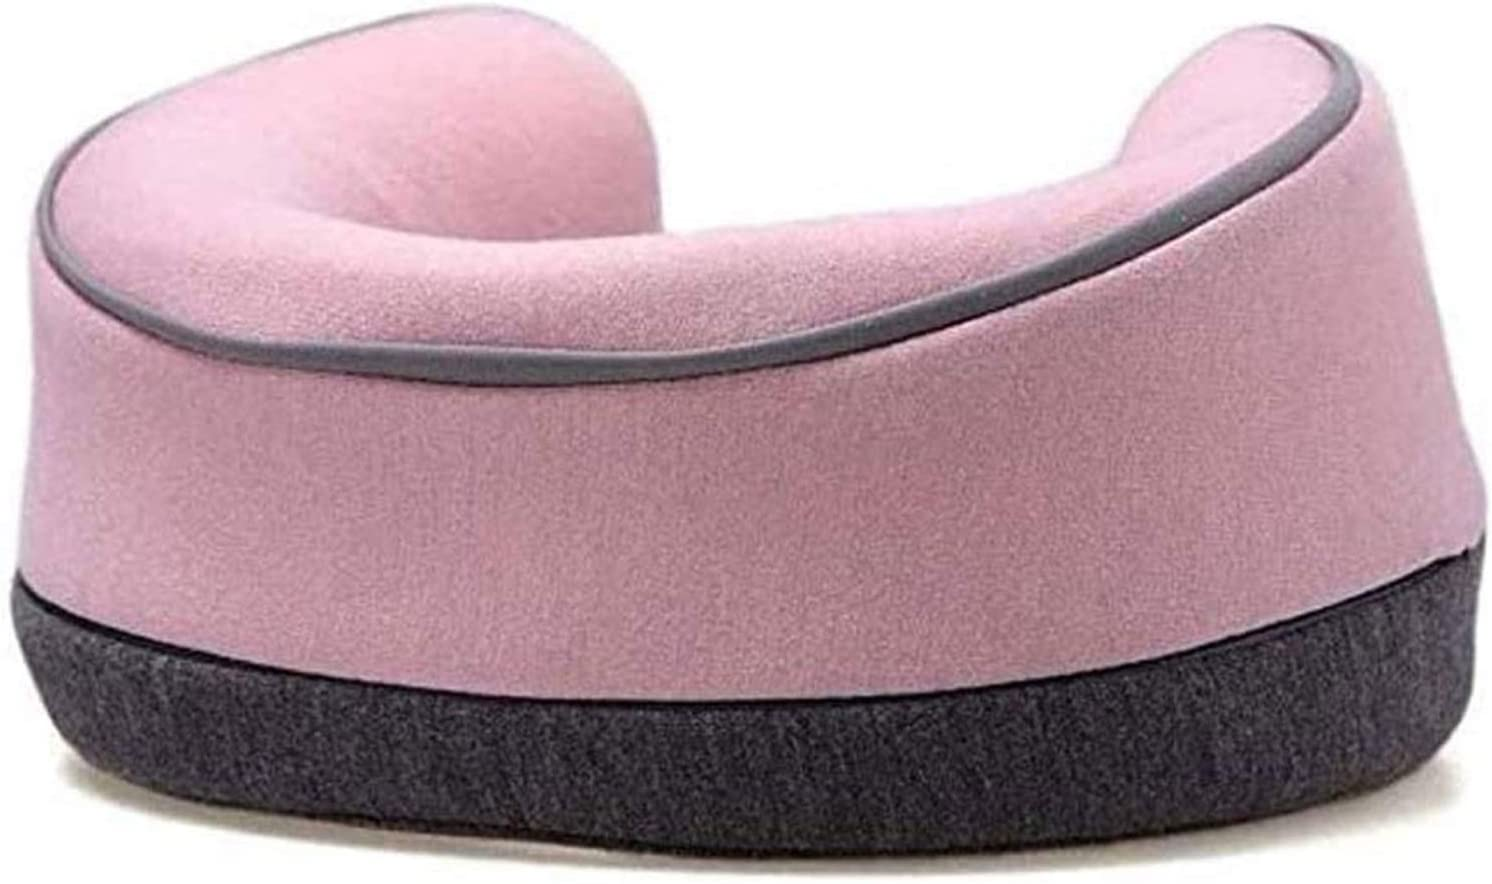 SFLRW Travel Pillow 100% Pure Memory Foam Neck Columbus Mall Pillows for Sales of SALE items from new works Airpl